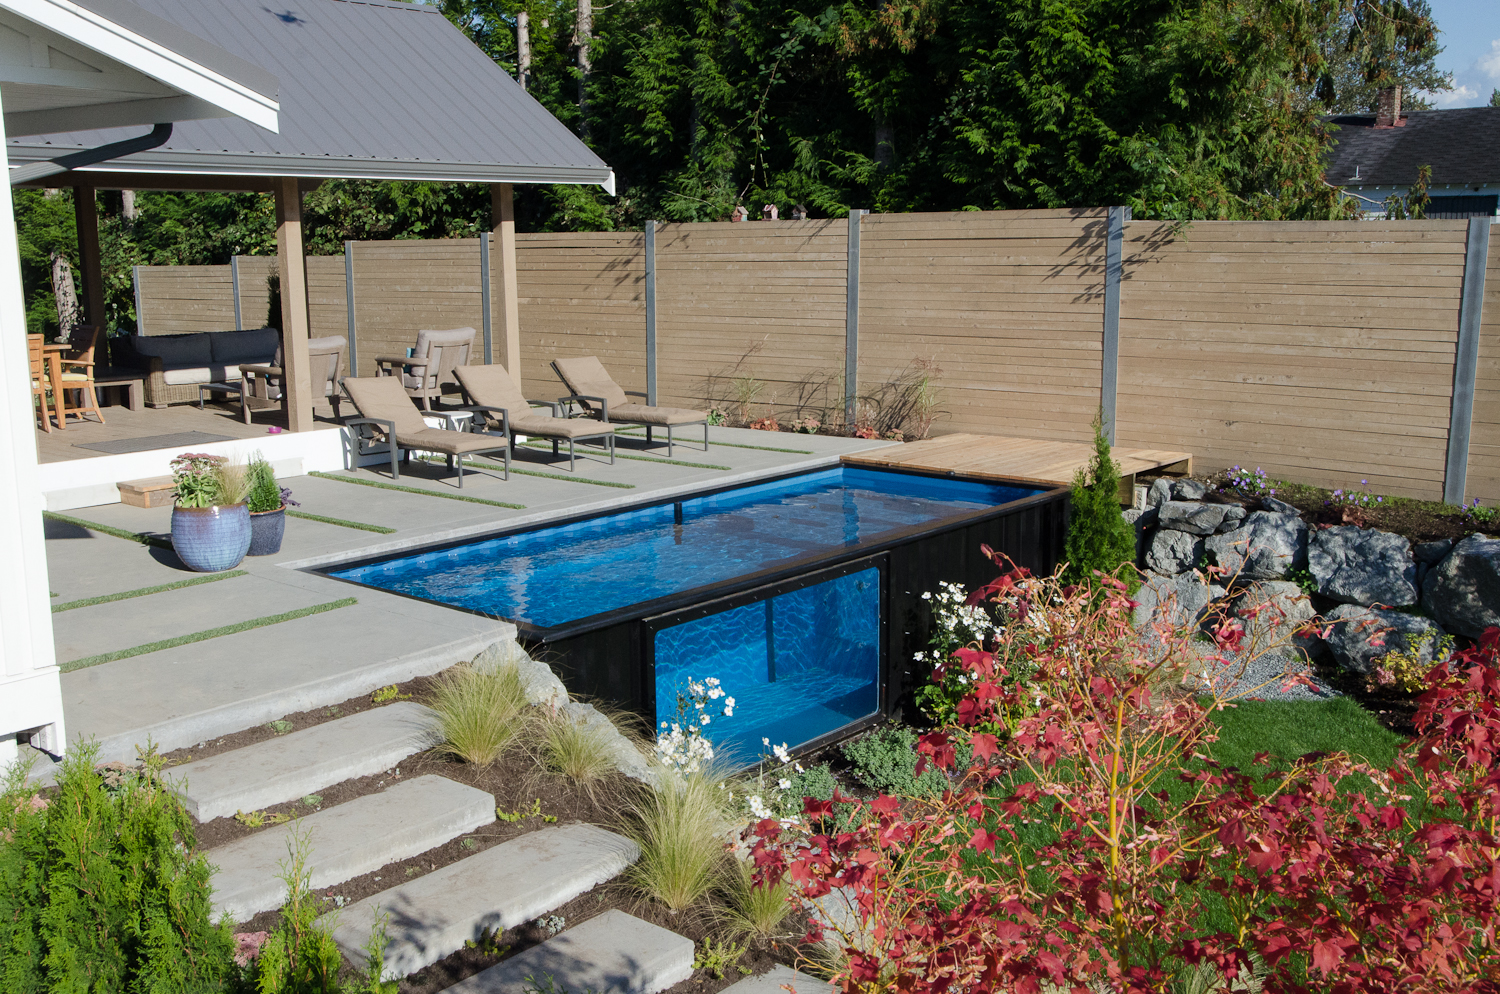 Swimming pool garden  Shipping Containers Transform Into Garden Swimming Pools - DesignCurial